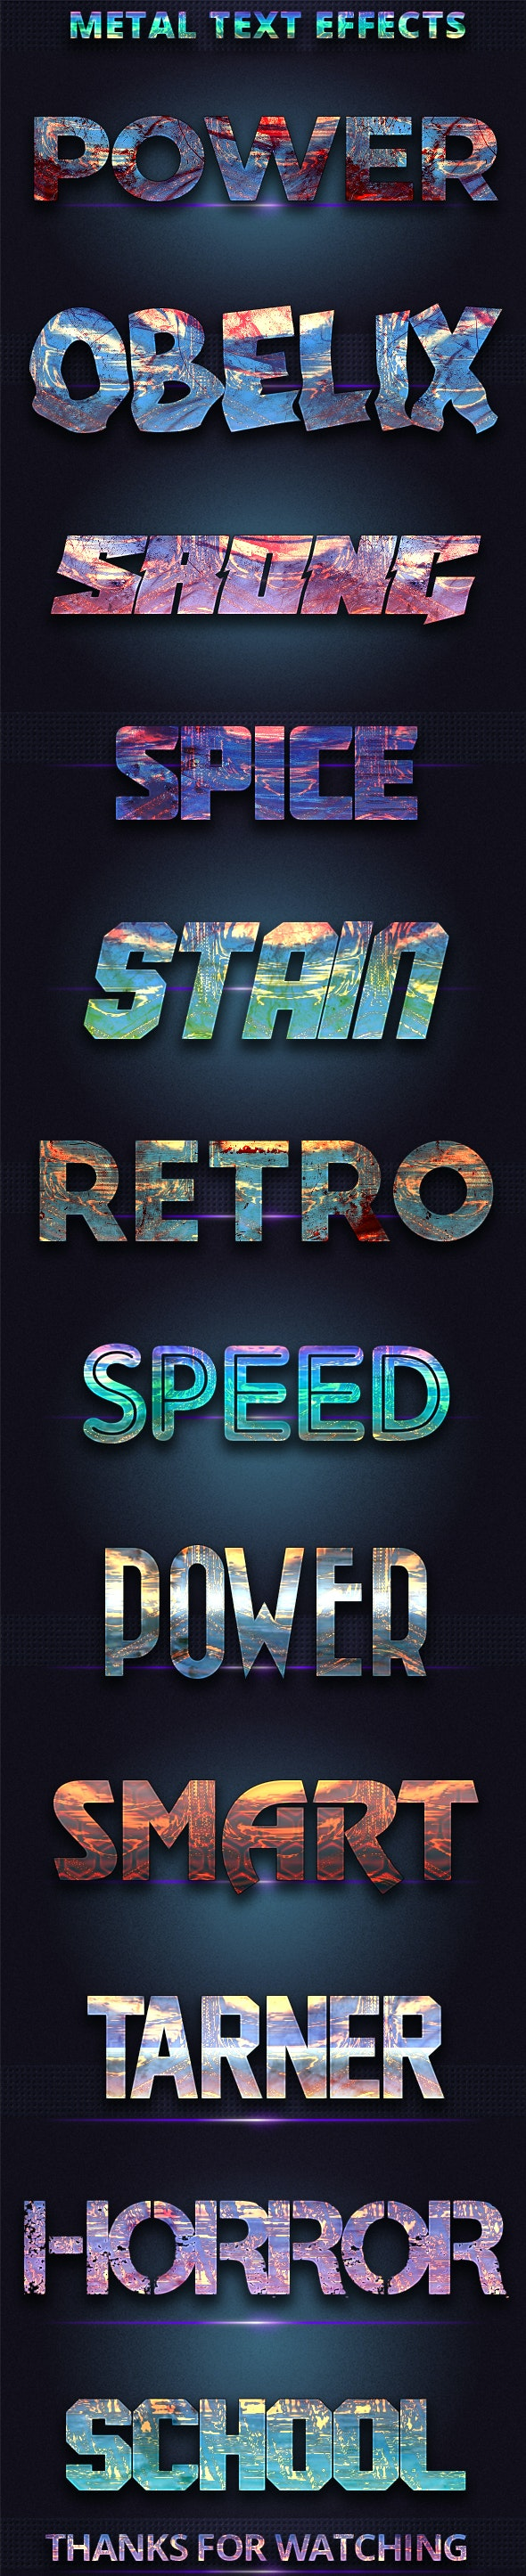 Realistic Mattel Text Effects - Text Effects Actions